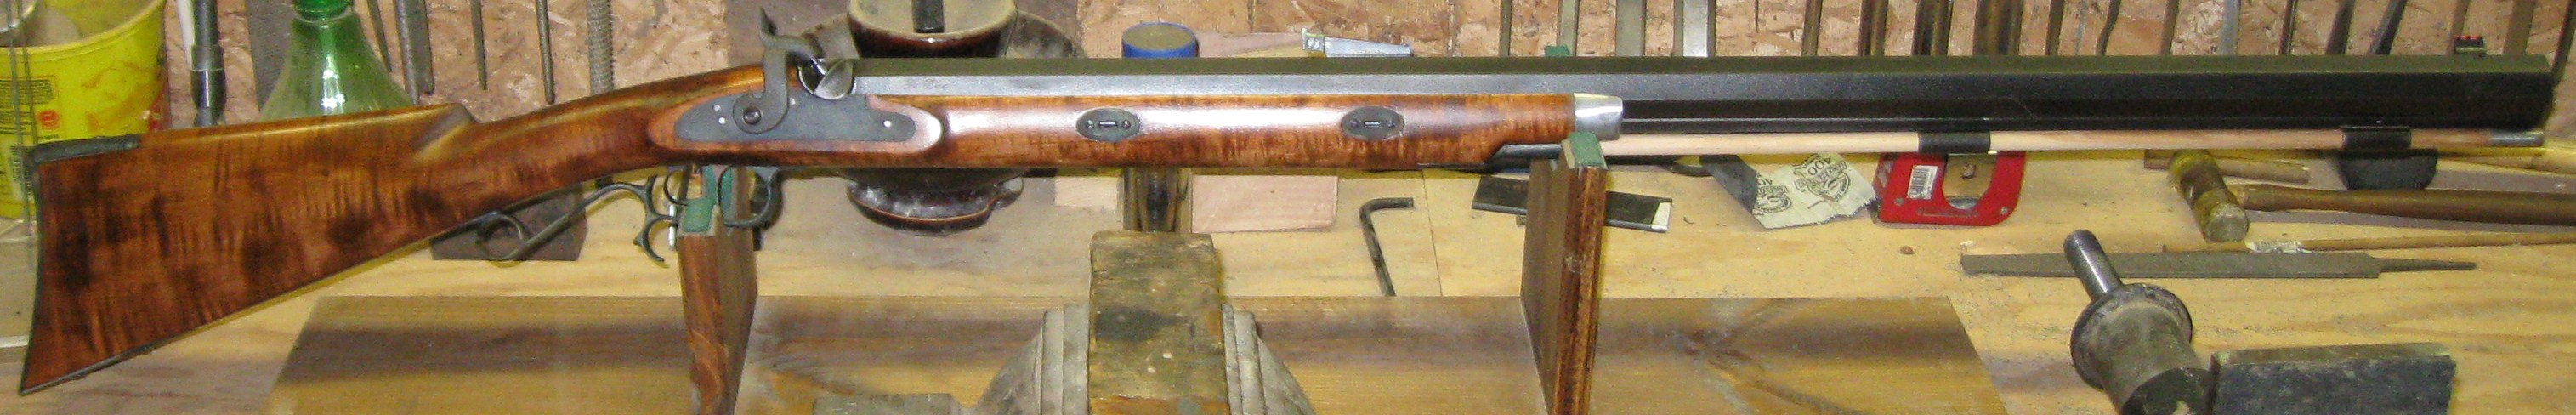 Right Side Full Rifle